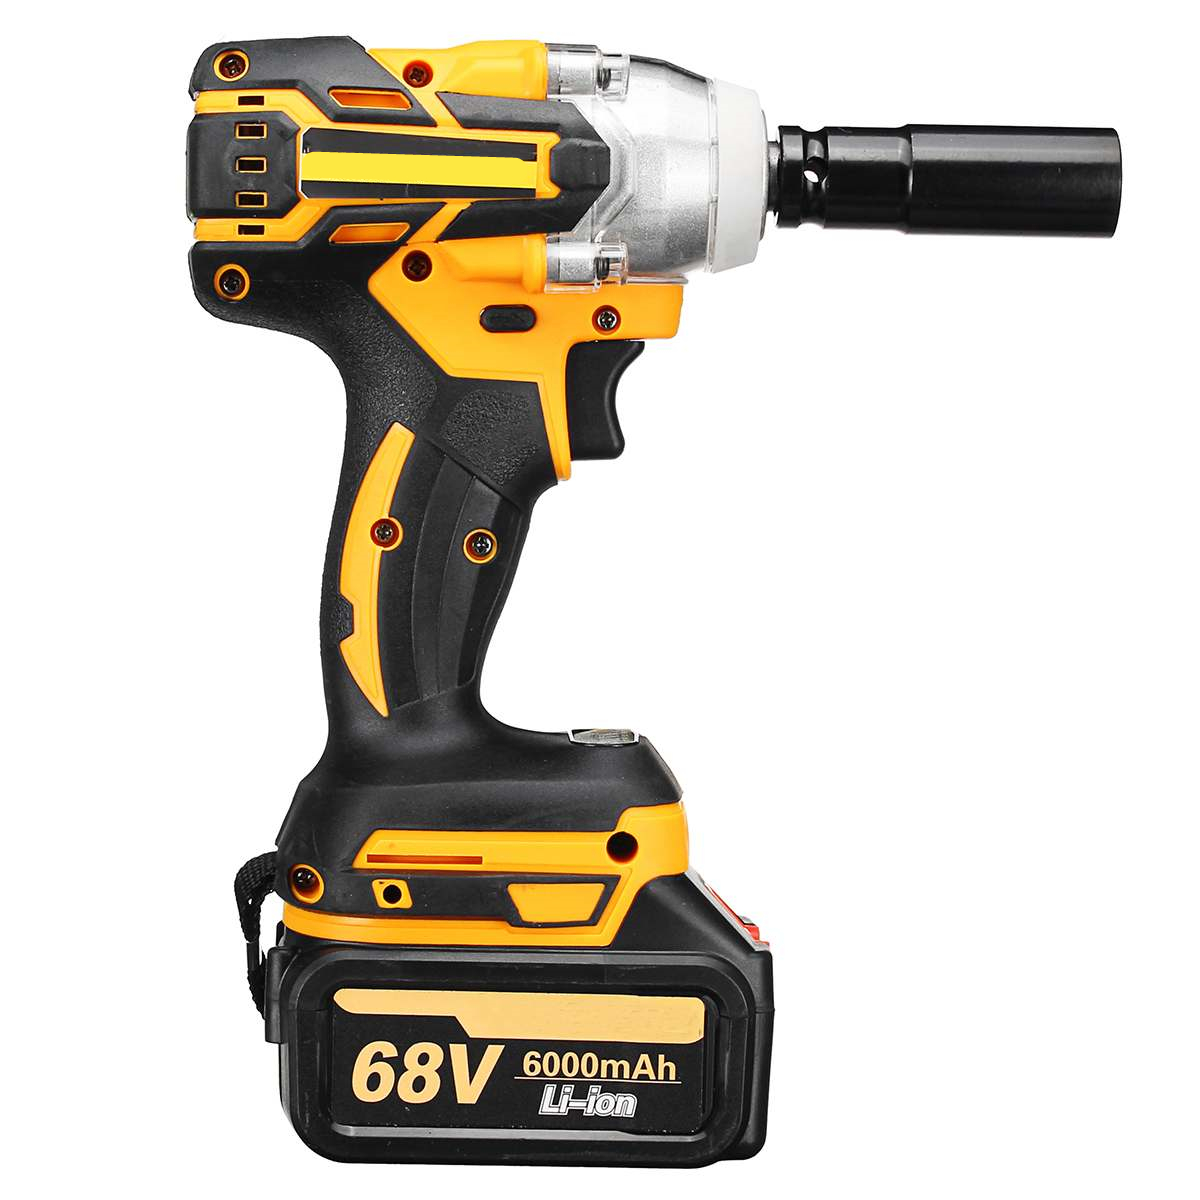 21V Brushless Electric  Impact Wrench Hand Drill Installation Power Tools With 2X 6000mAh Li Battery Batteries